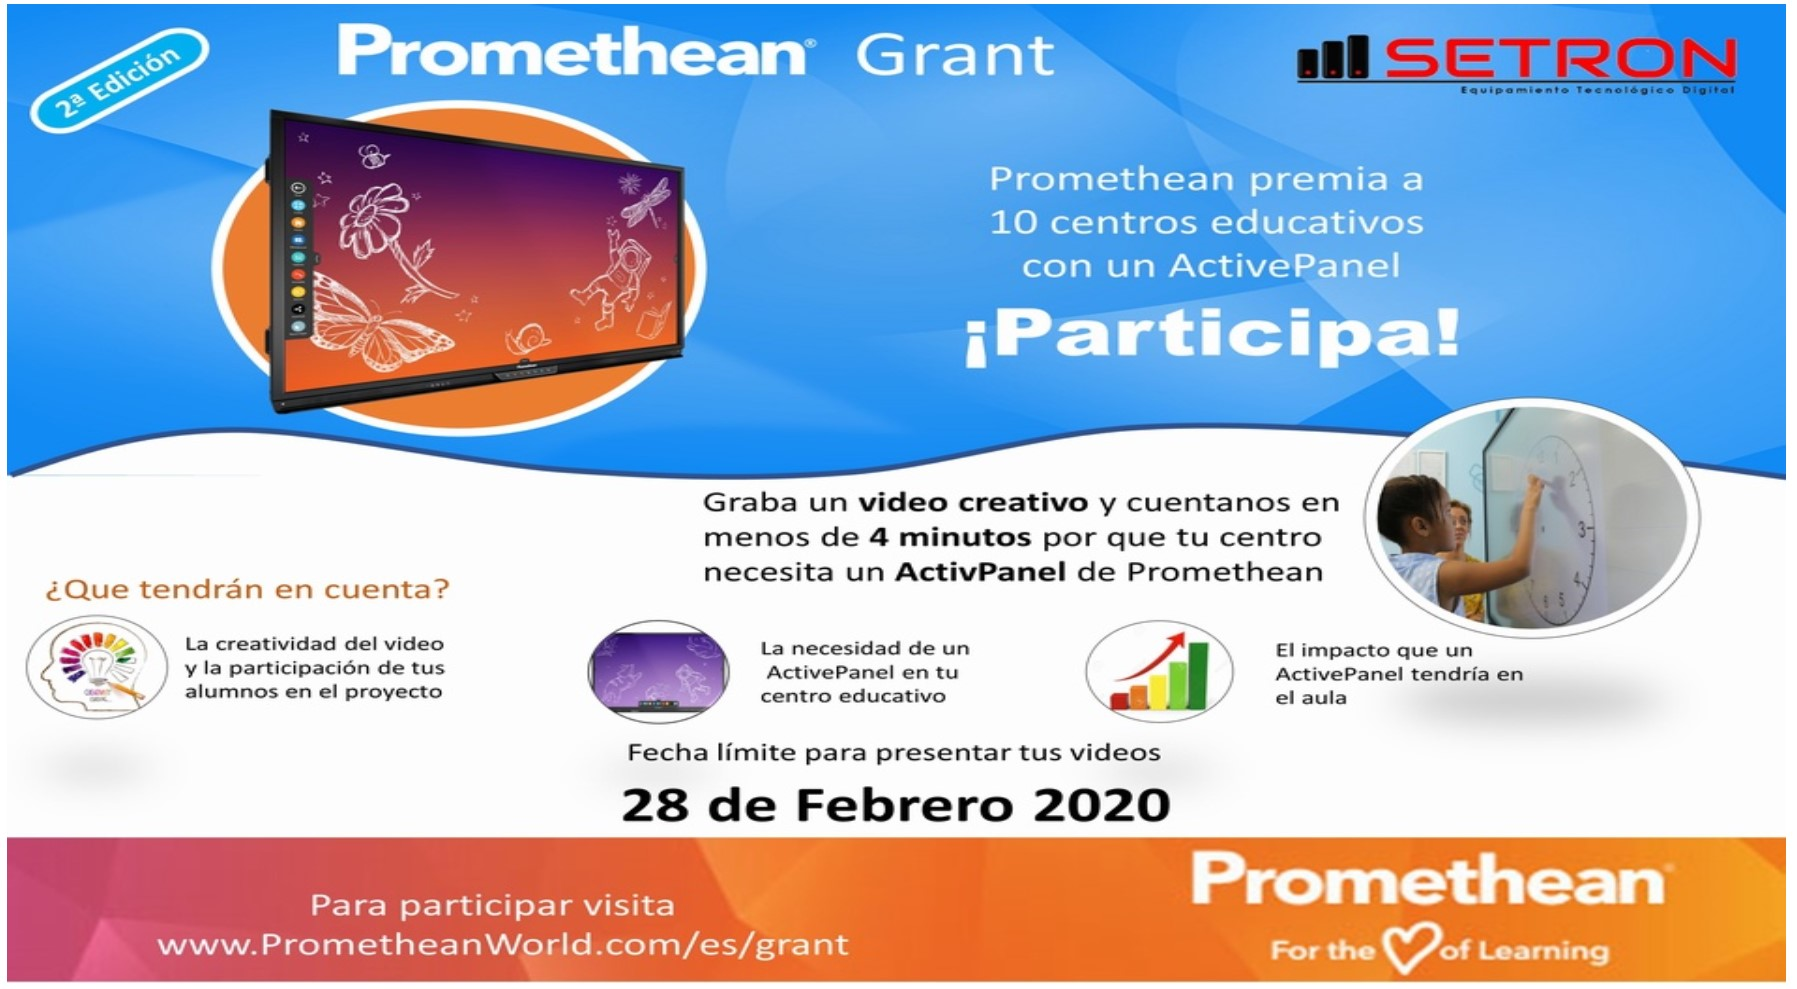 promethean grant monitor promethean